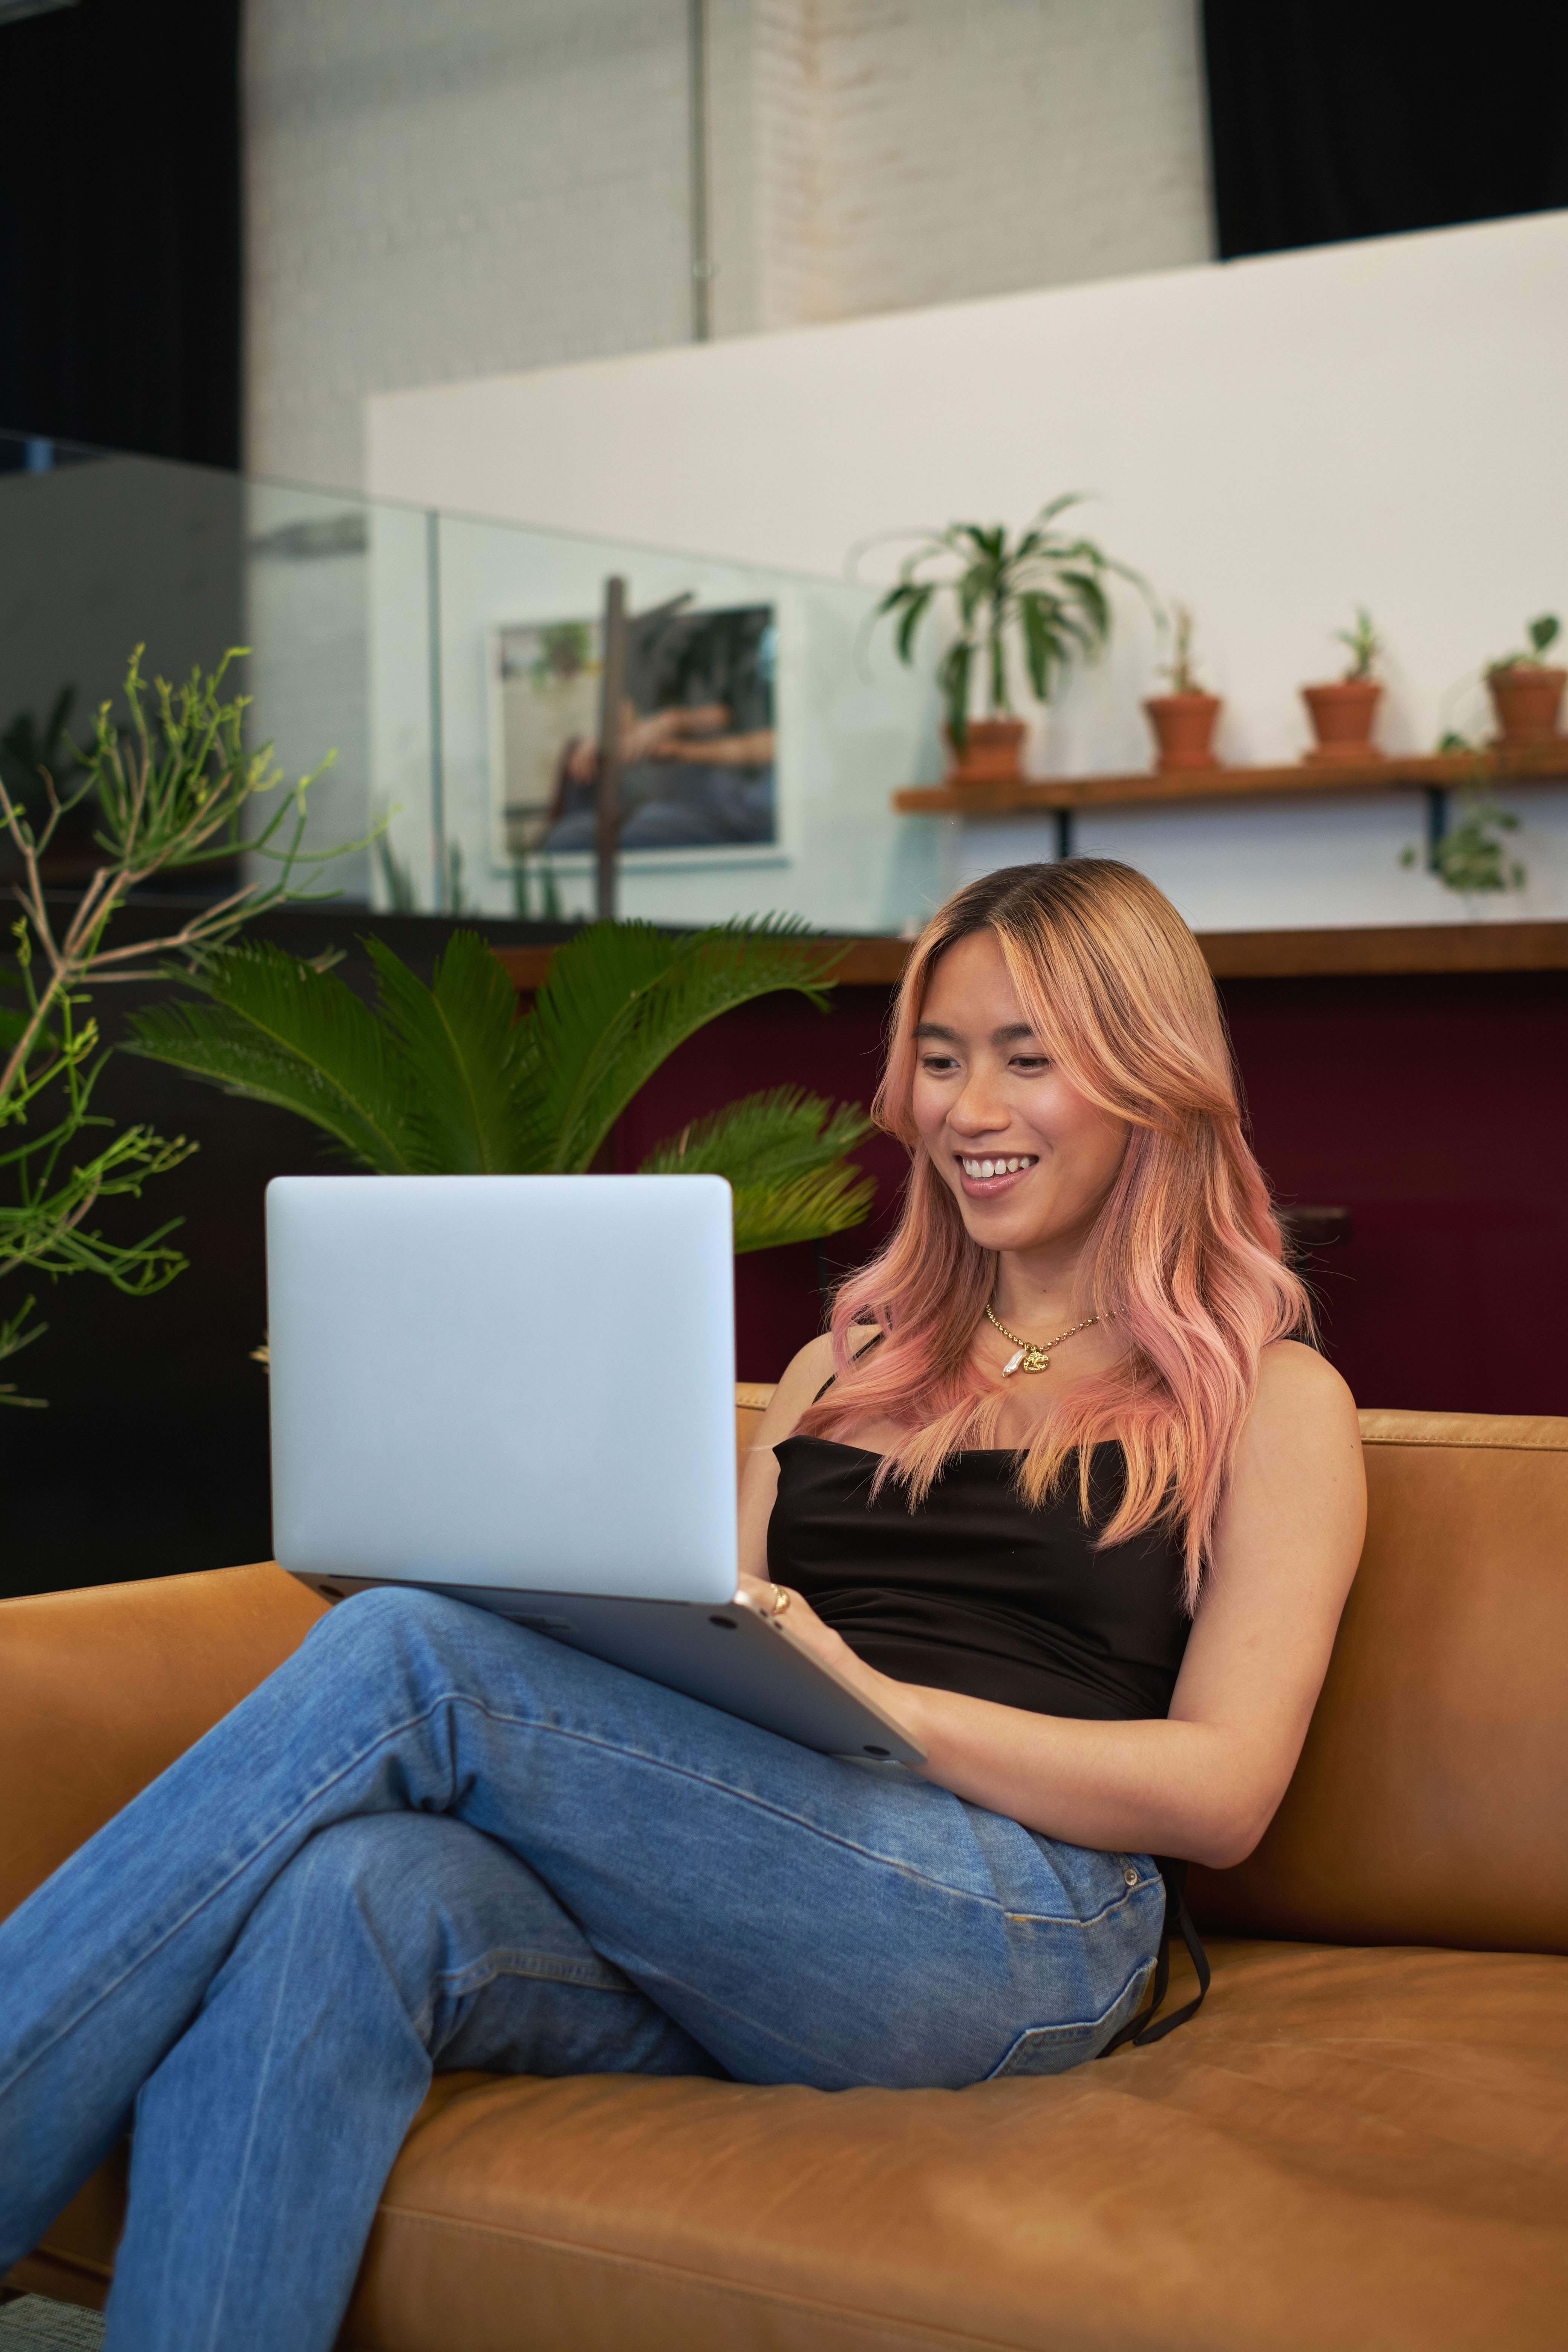 A transfeminine person smiling and using a laptop